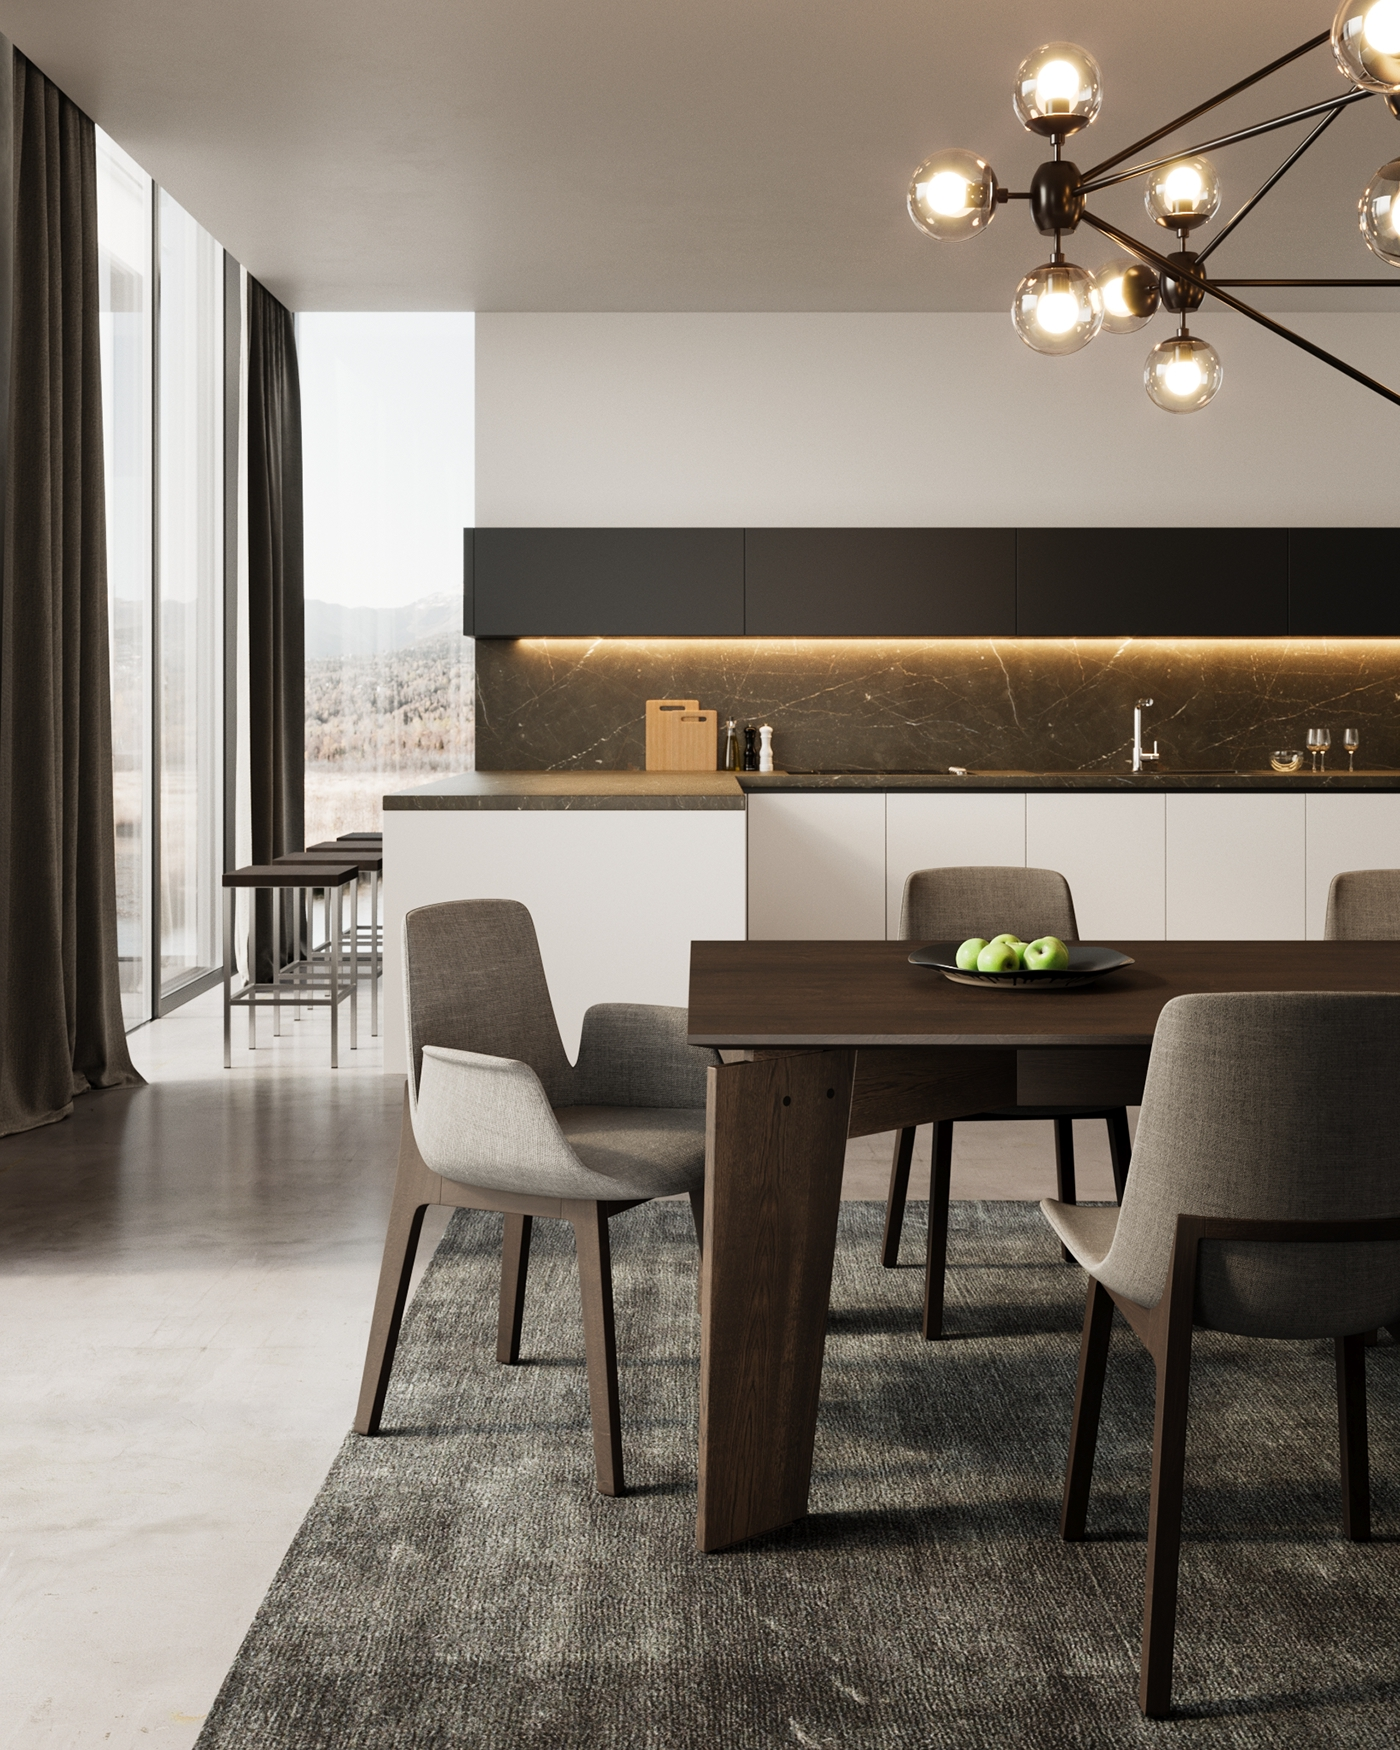 ... Poliform Varenna Kitchens. The Idea Is To Have Several Sets Of Images,  Showing Different Layouts And Different Models Of Kitchens In A  Photorealistic, ...